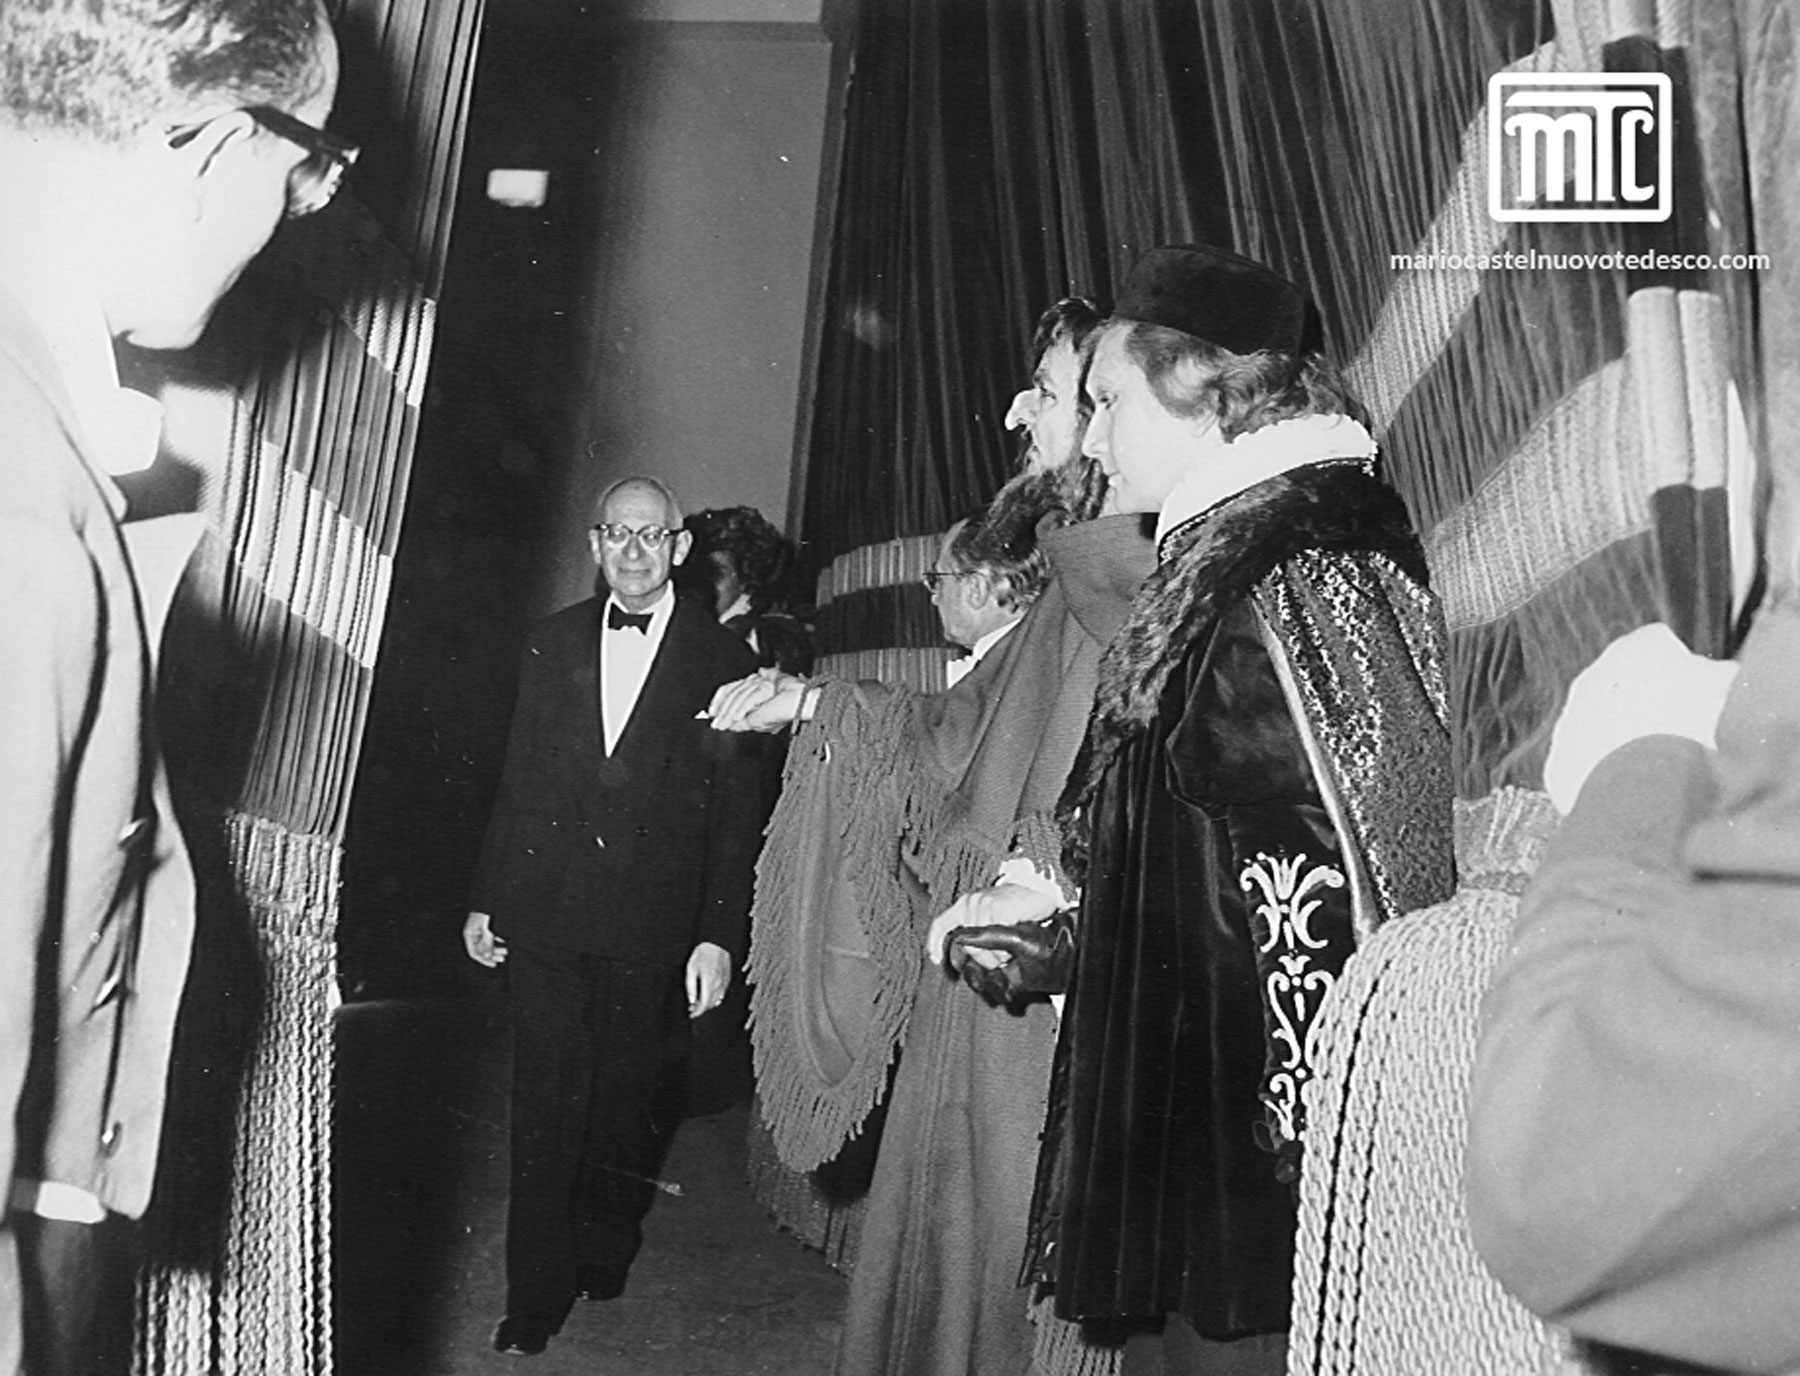 MCT at premiere of Merchant of Venice, Curtain Call, Florence, 1961